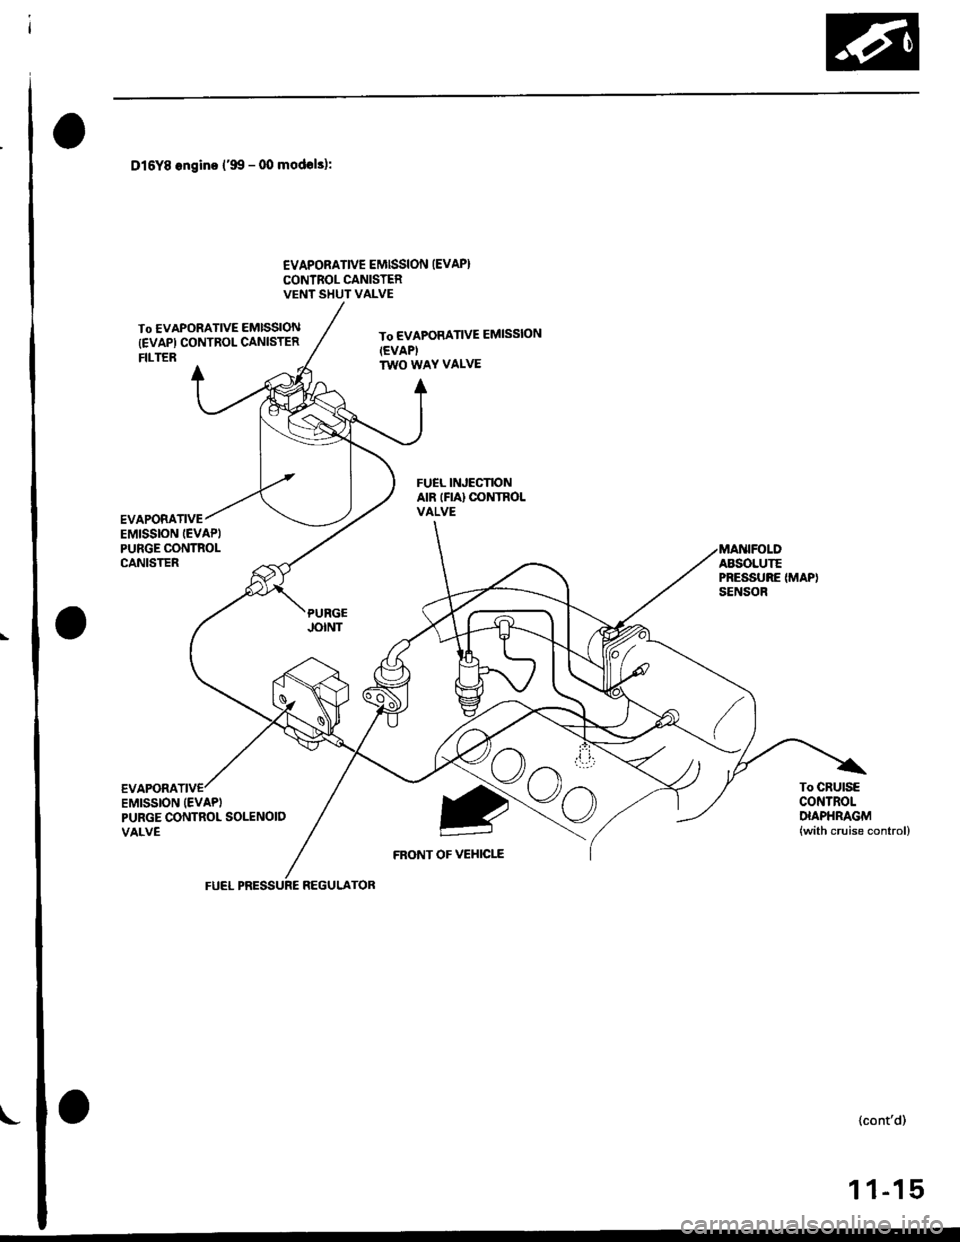 Honda Civic 1997 6g Workshop Manual Evap System Diagram